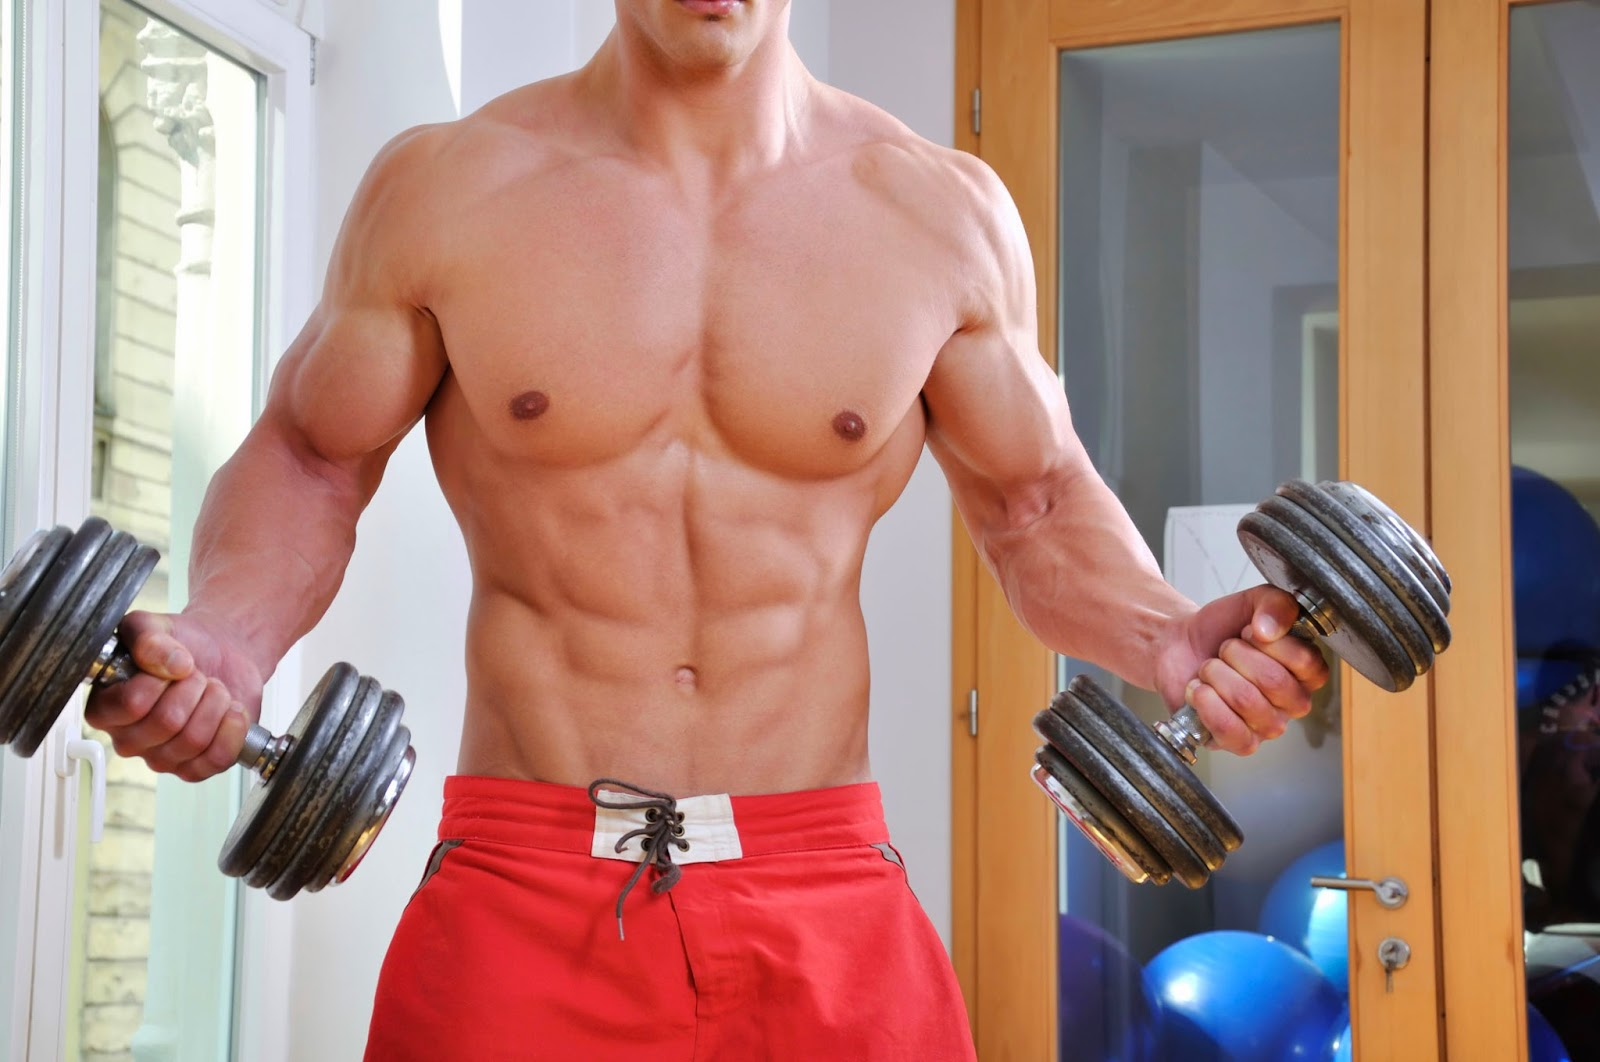 Tips for gaining muscle mass